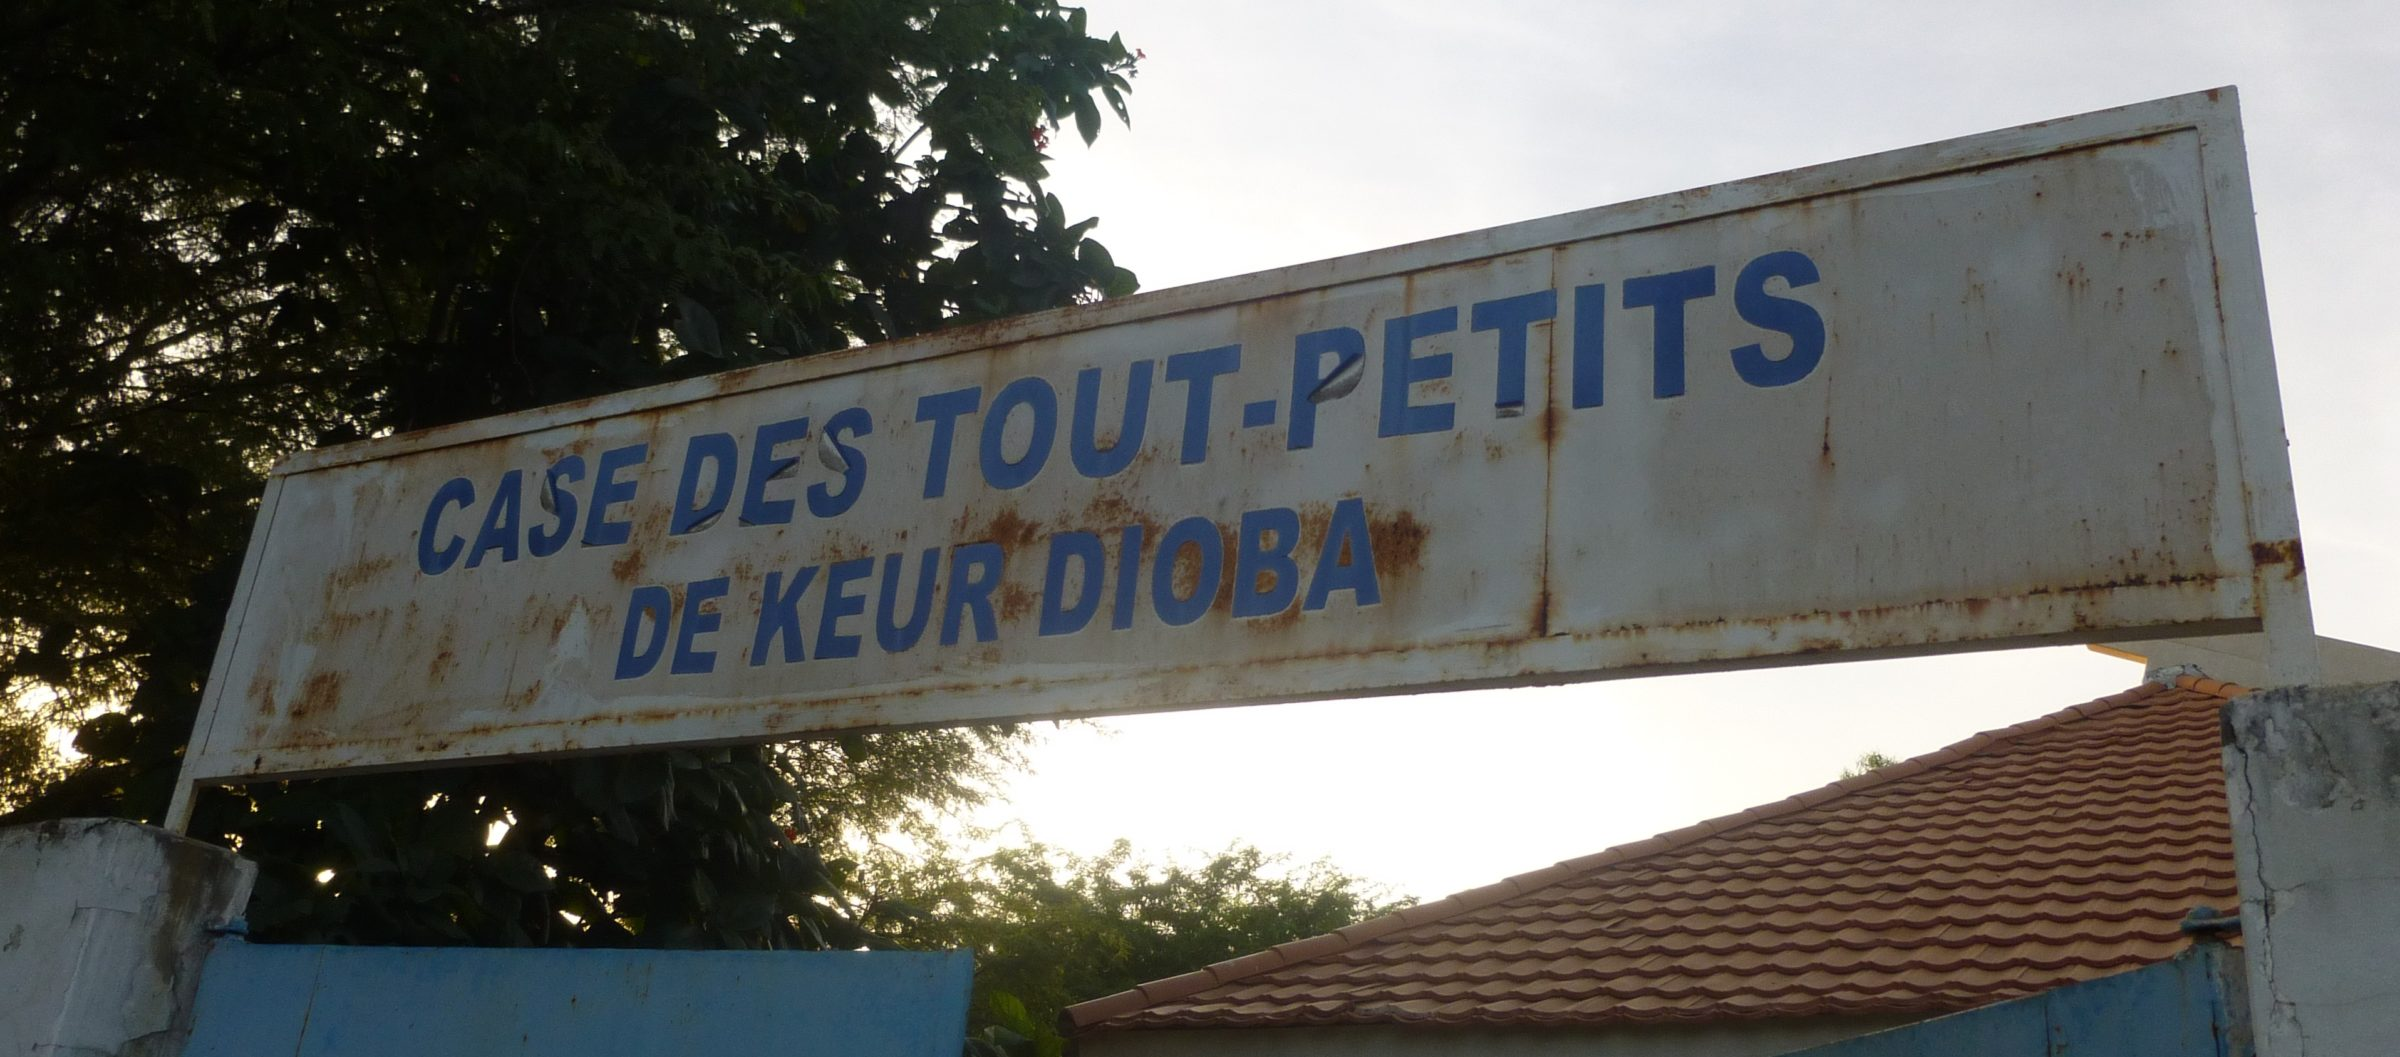 The mothers of Keur Dioba